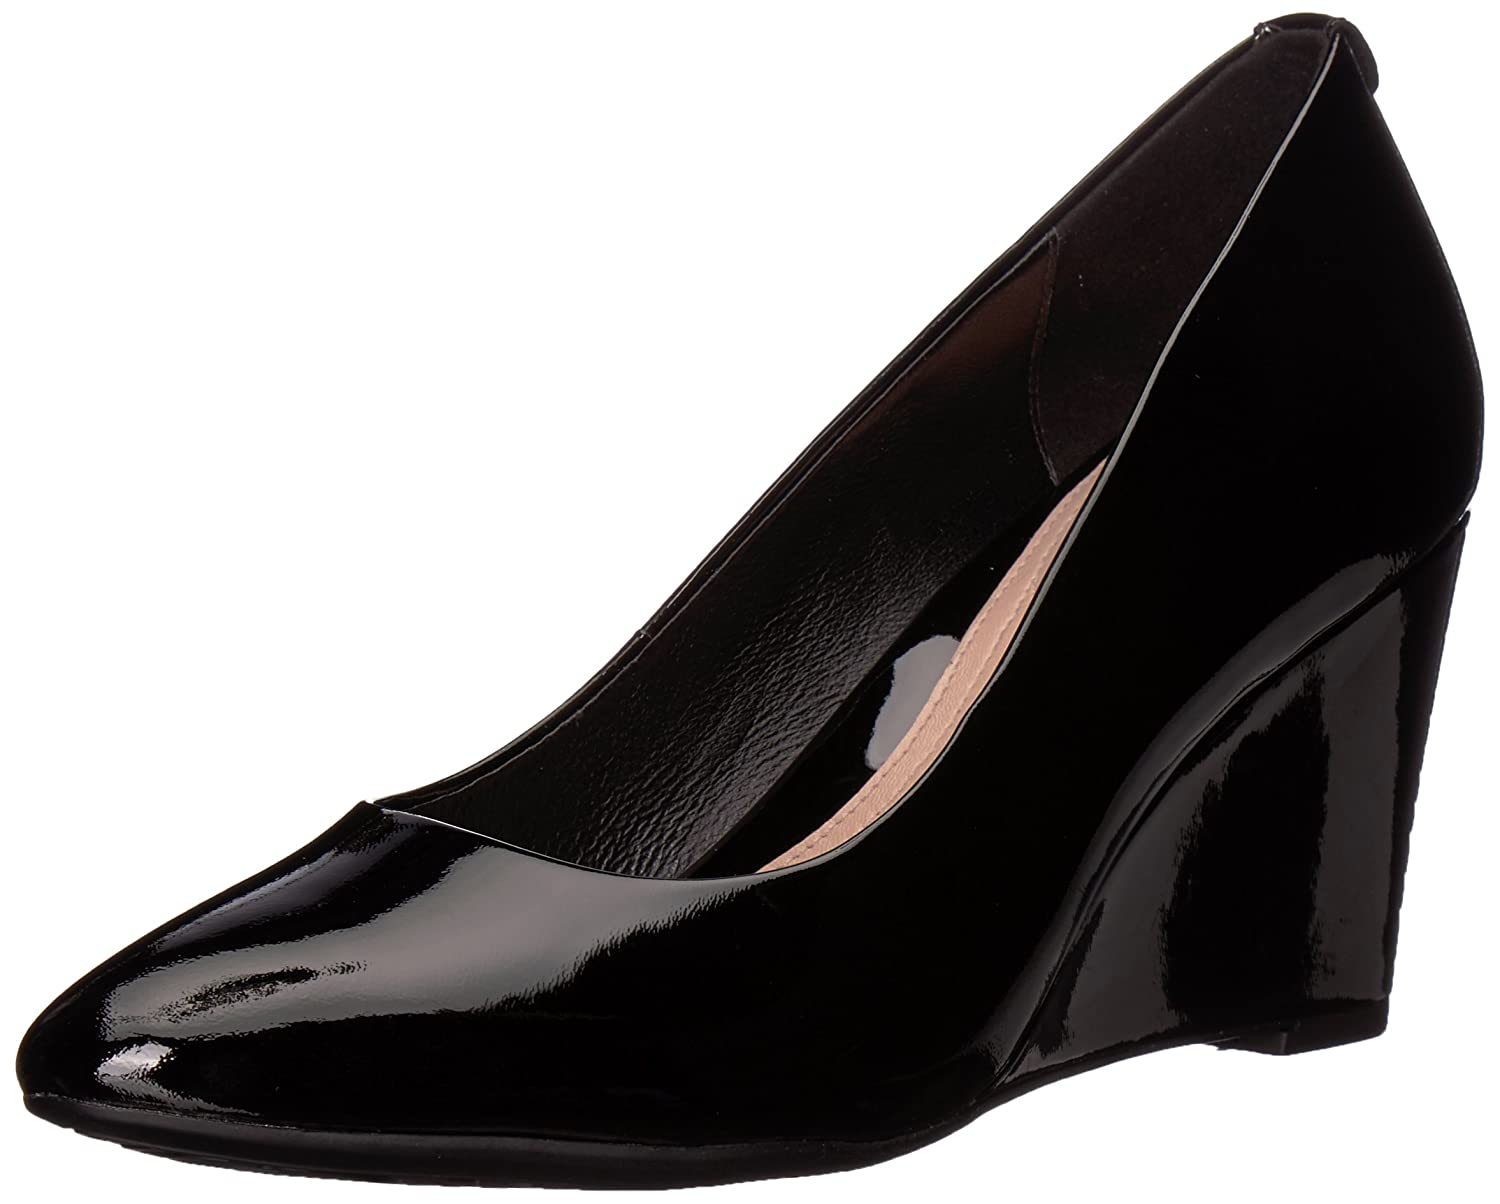 Taryn Rose Women's Ysabella Soft Patent Pump B074B5F732 7.5 M M US|Black